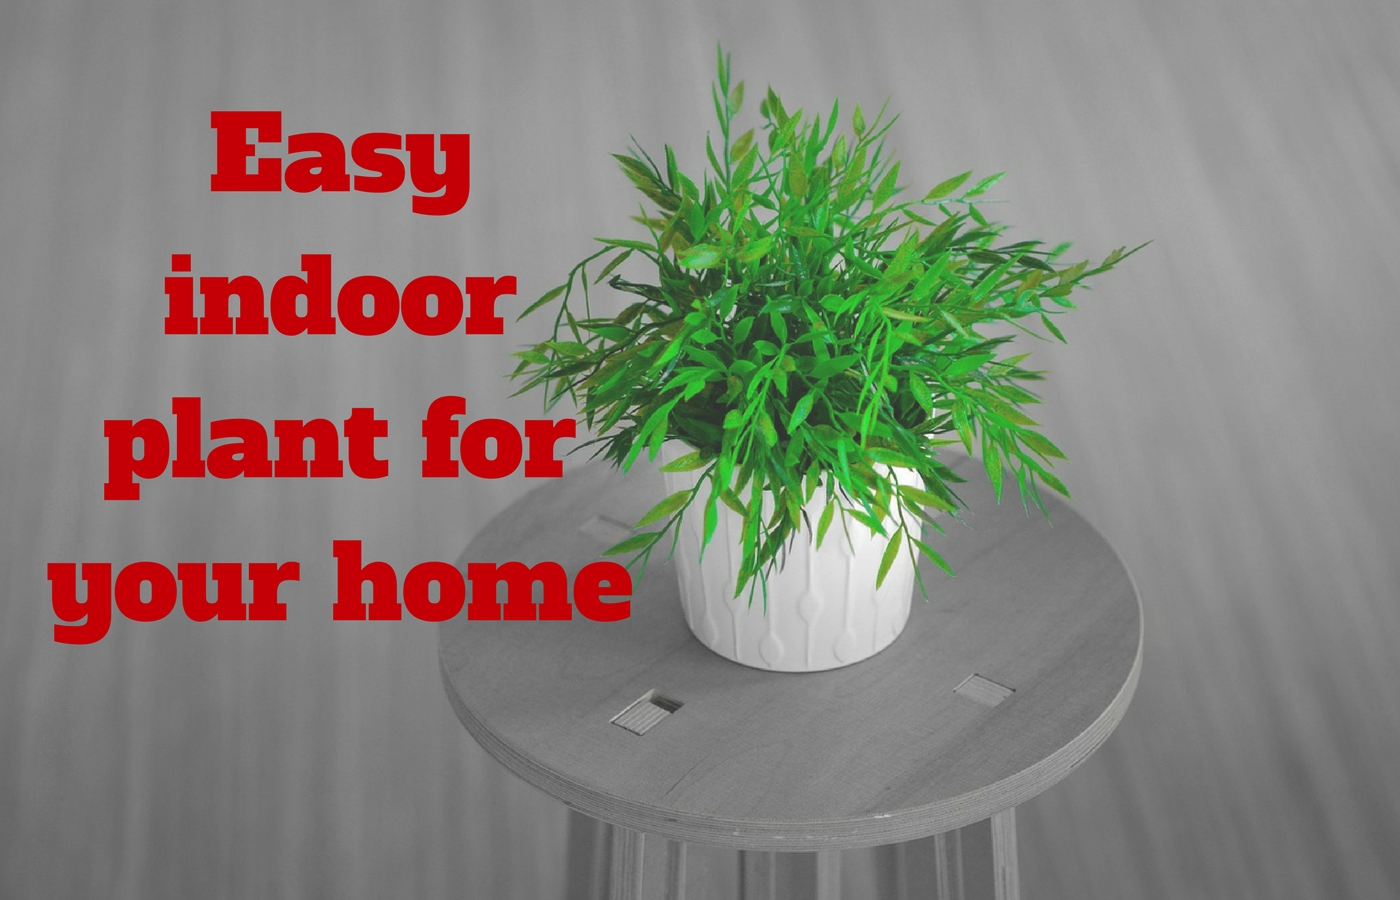 Easy indoor plant for your home